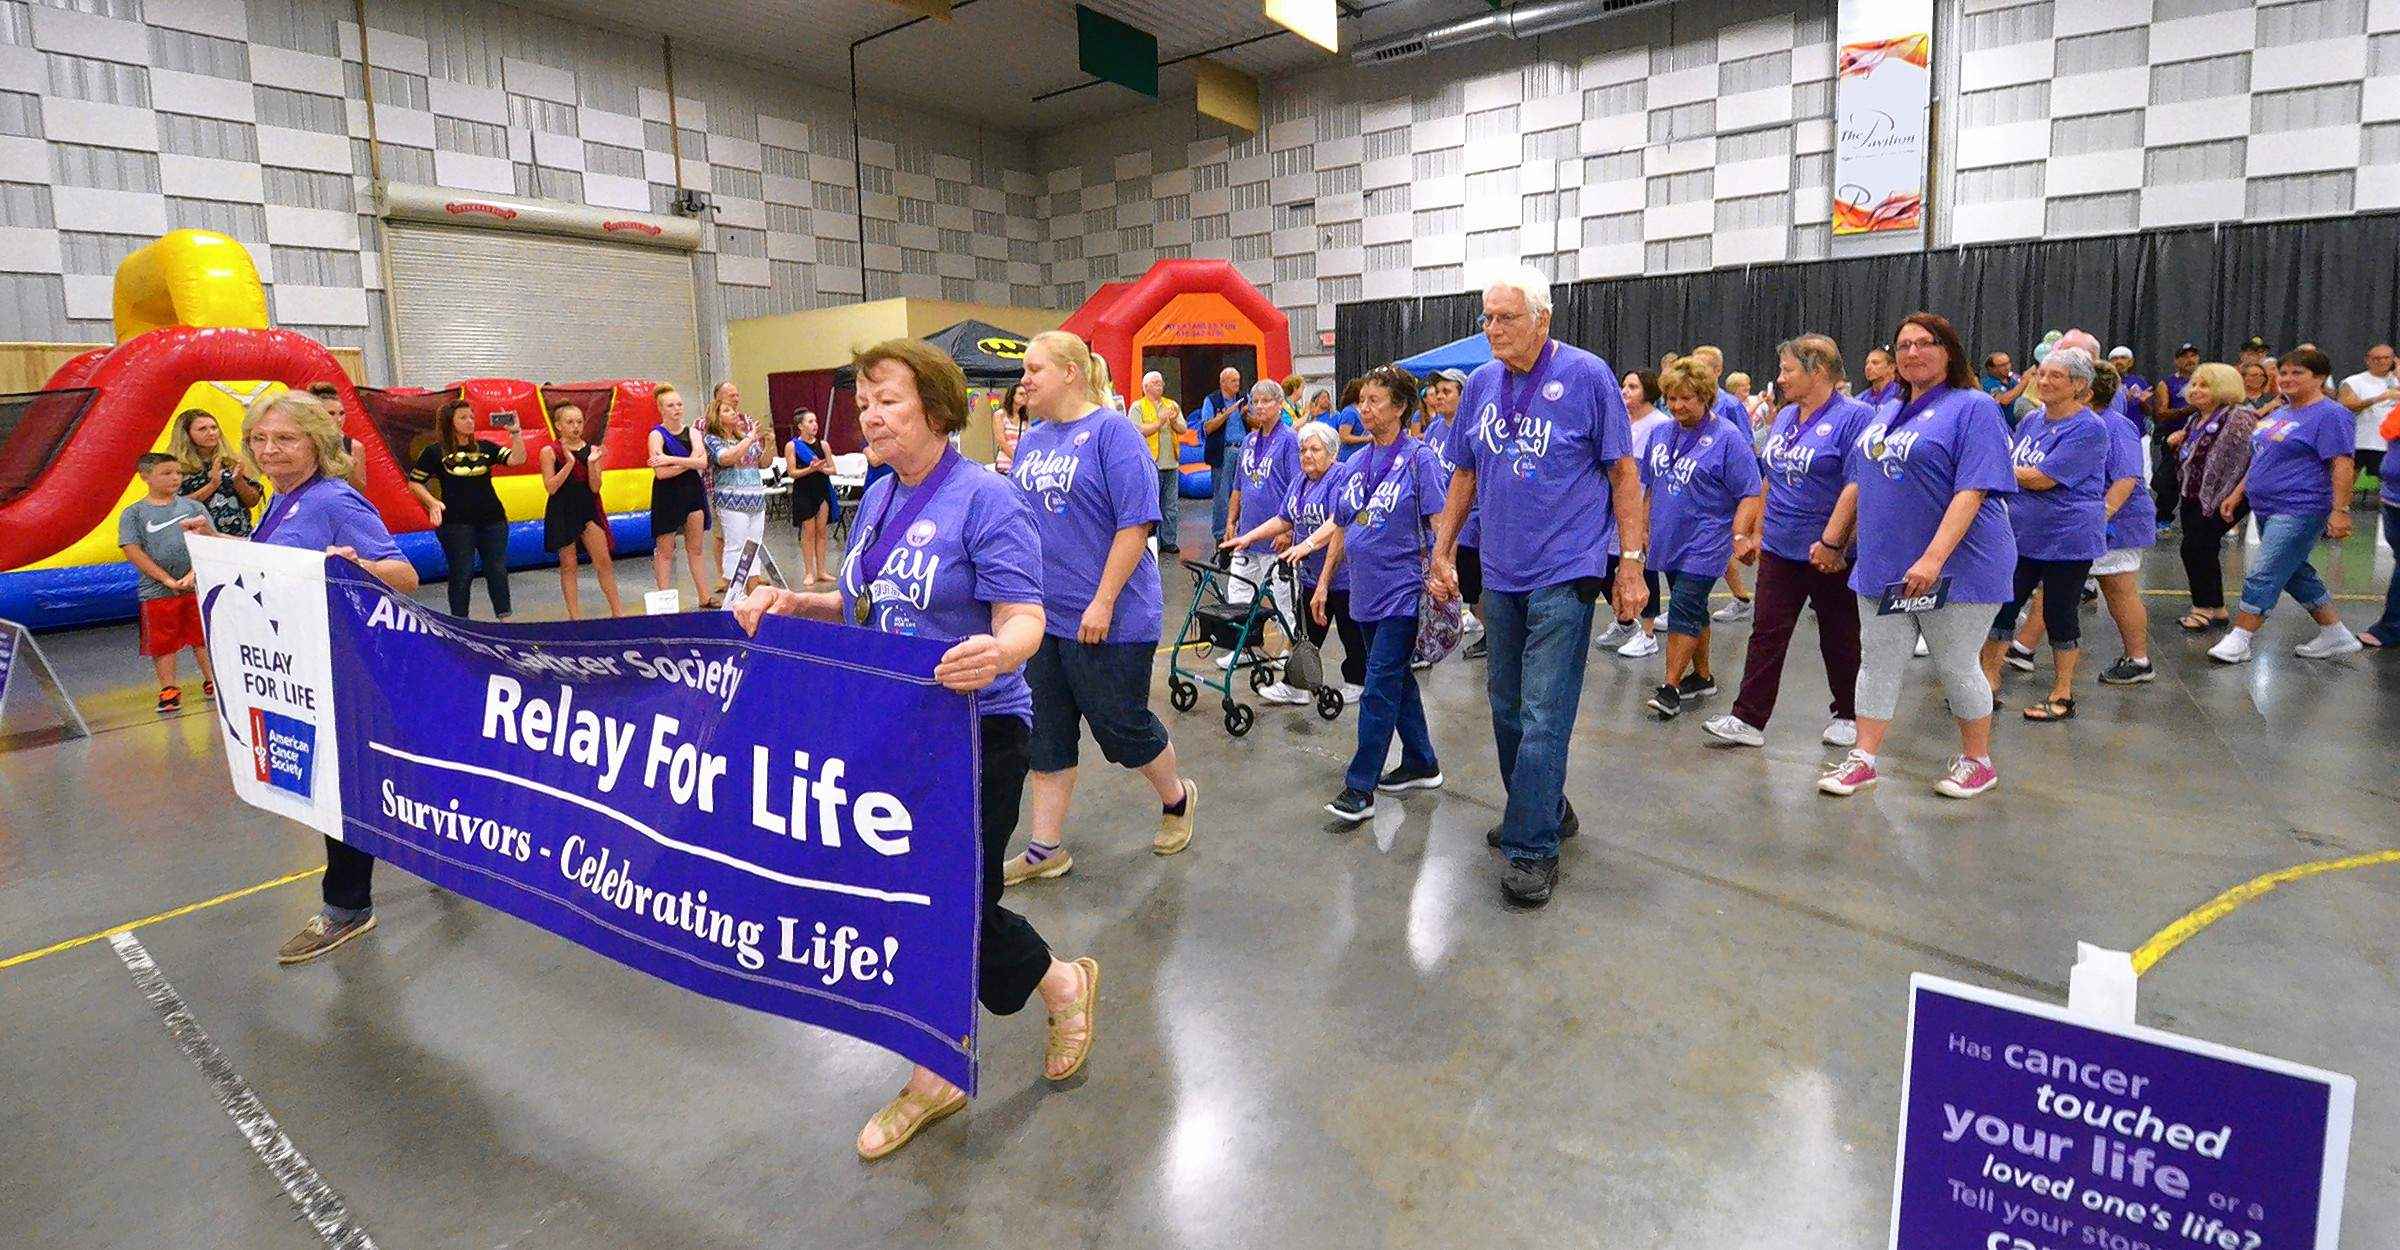 The first lap at Relay For Life events is always made up of cancer survivors. This was that lap Saturday night at The Pavilion of the City of Marion.